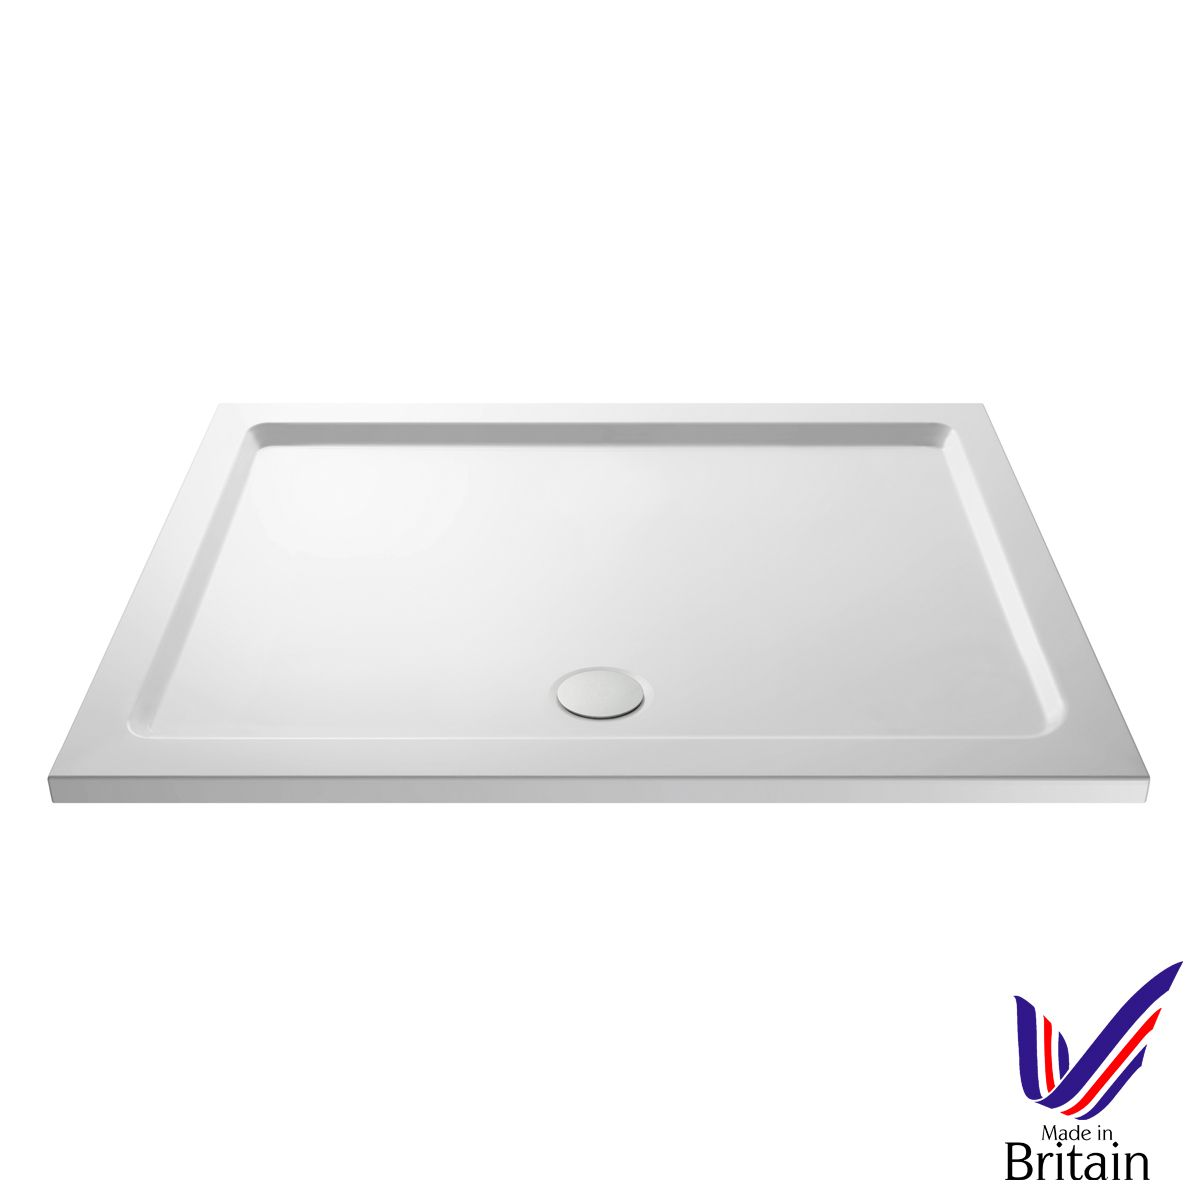 1700 x 900 Shower Tray Rectangular Low Profile by Pearlstone